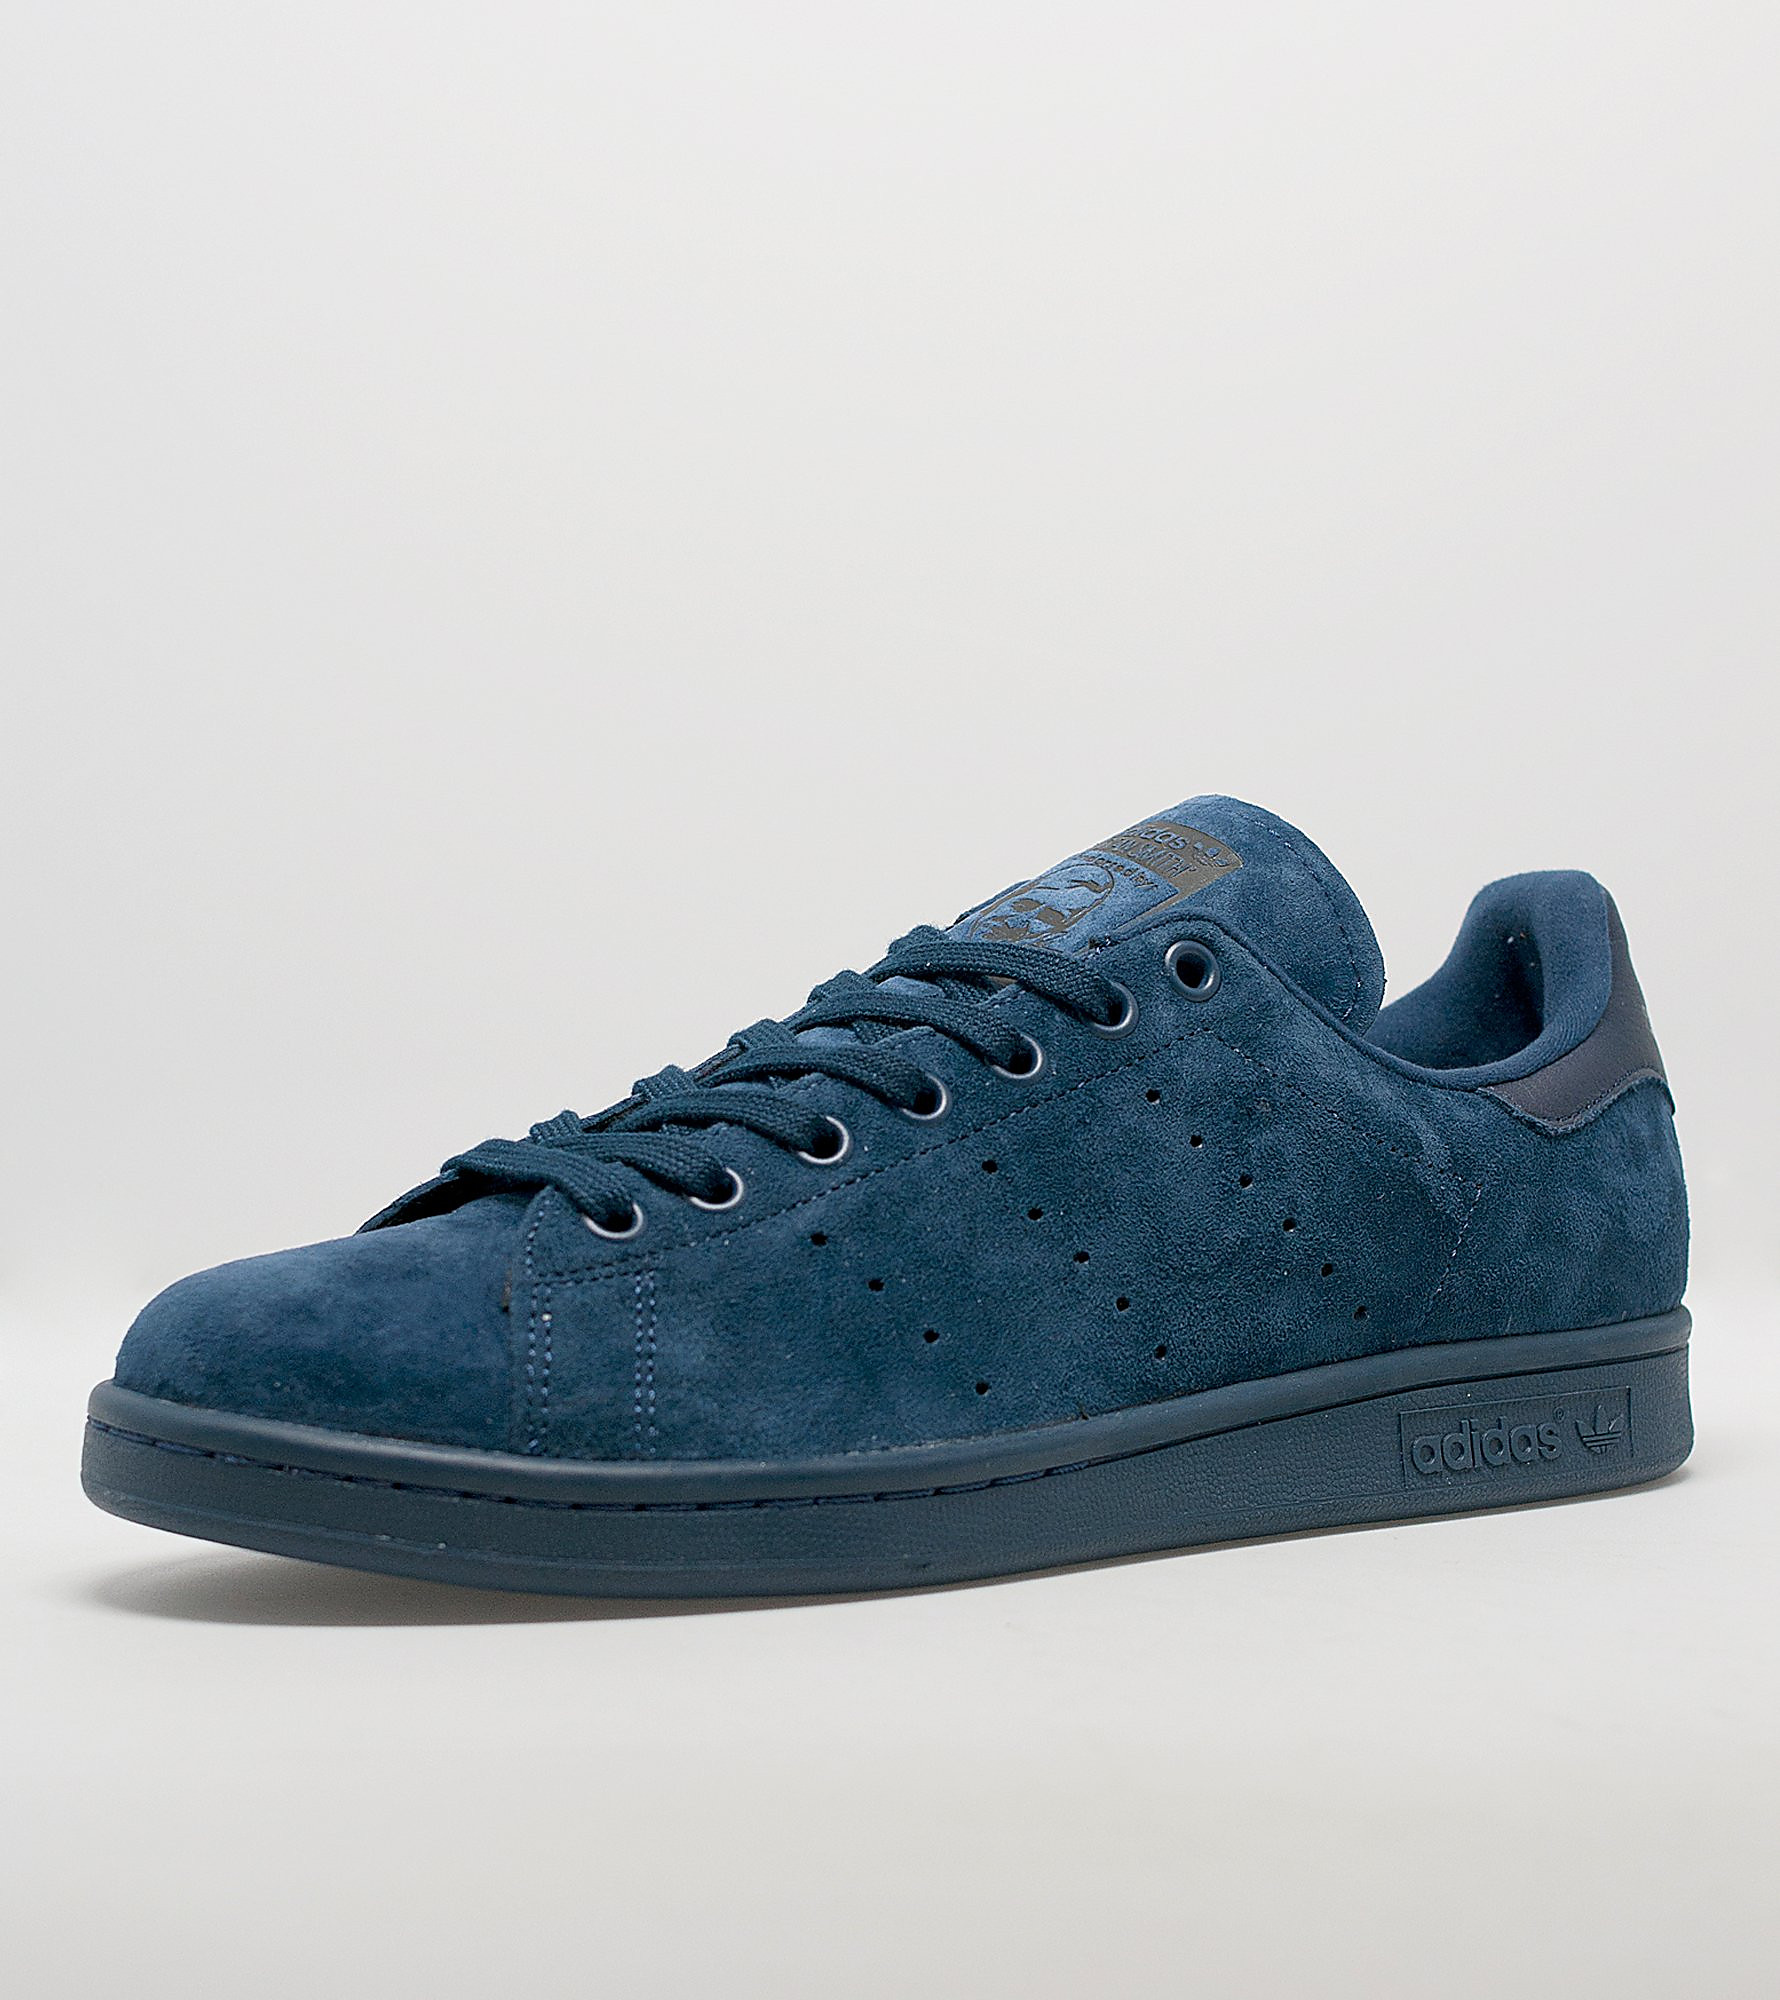 adidas stan smith blue